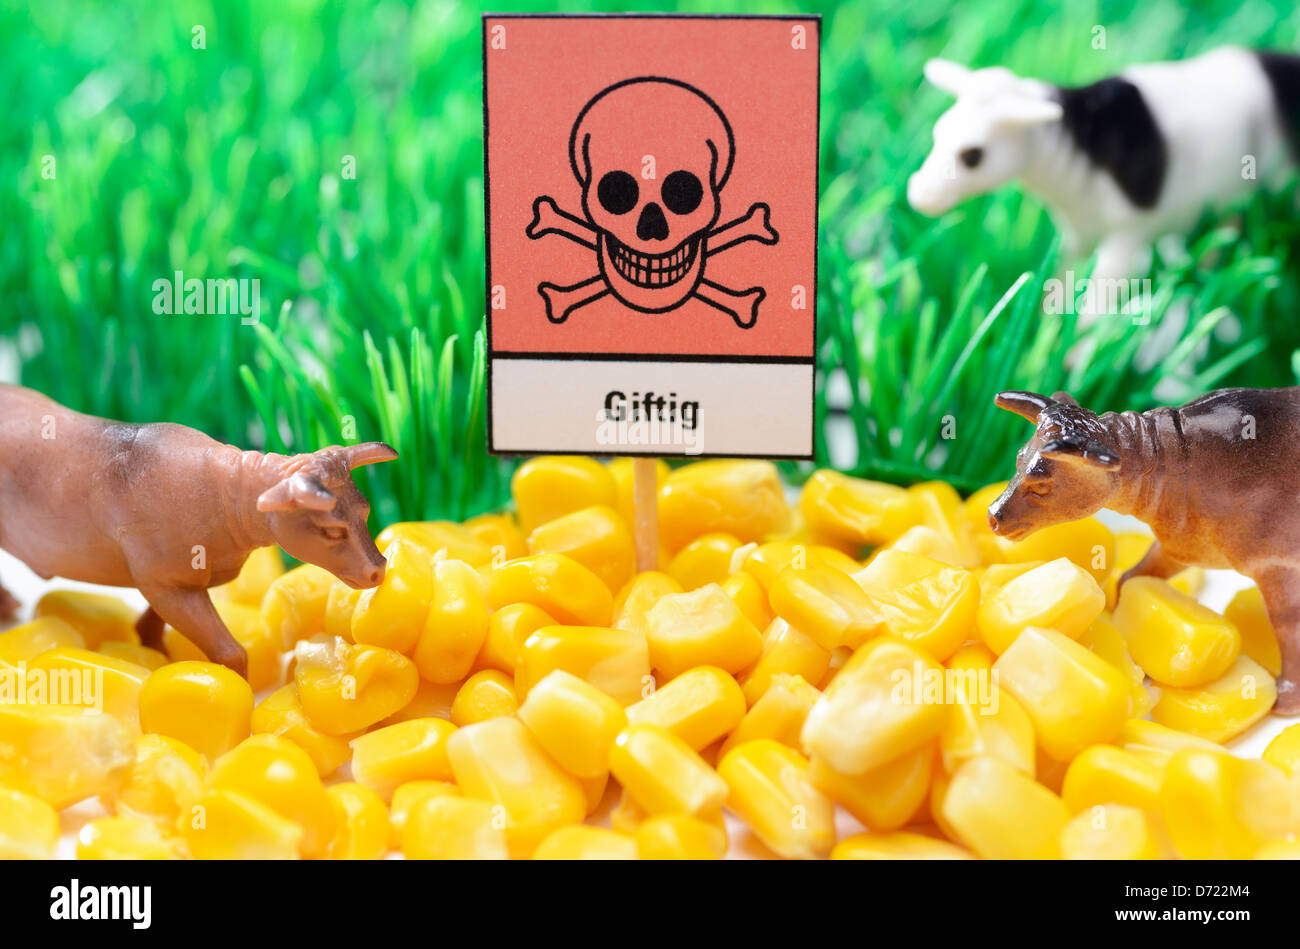 Cow's figures and maize with poison sign, feed scandal - Stock Image